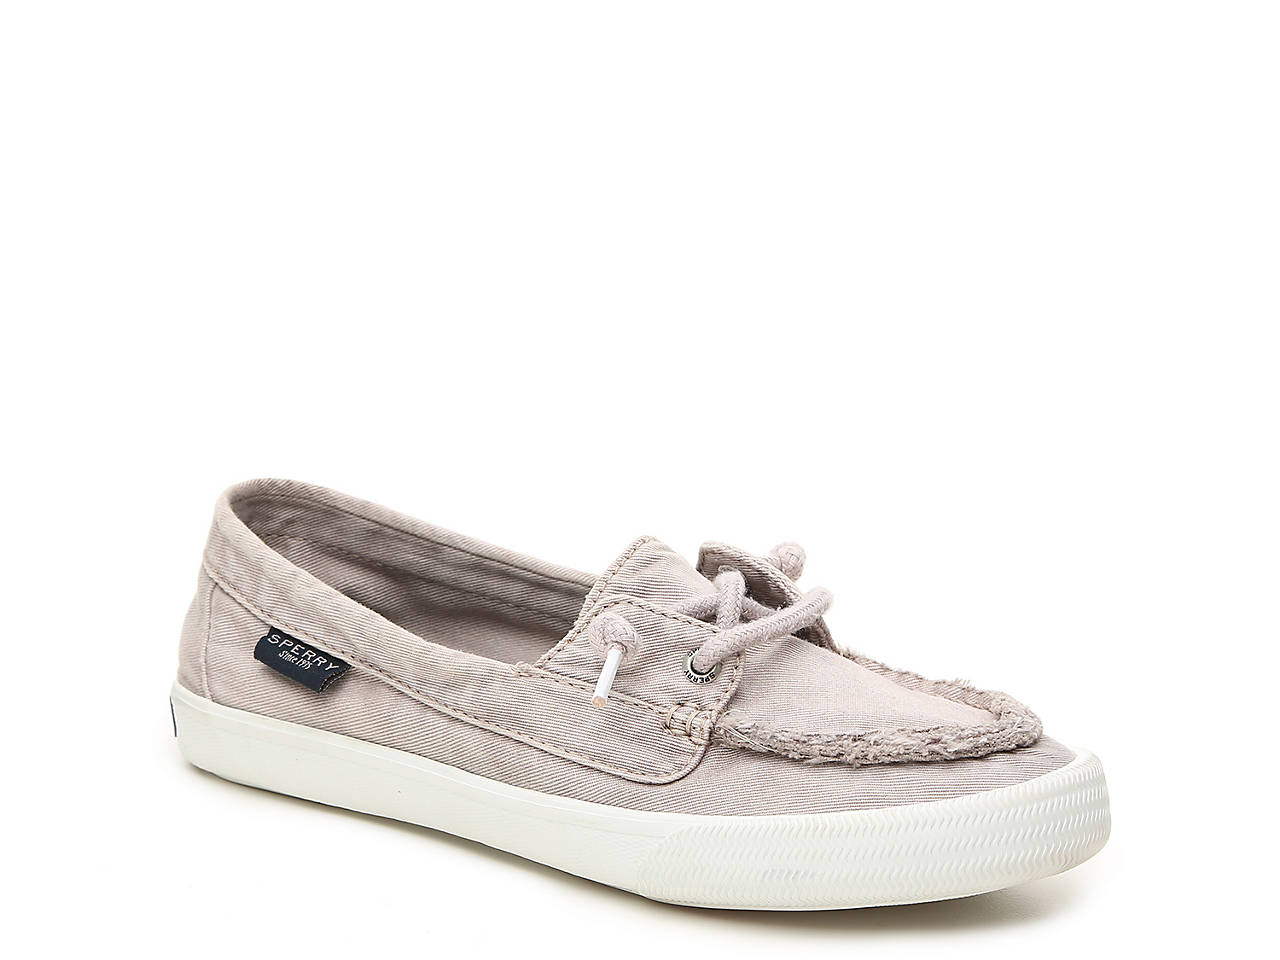 03335d4f63fe Sperry Top-Sider Lounge Away Frayed Boat Shoe Women s Shoes